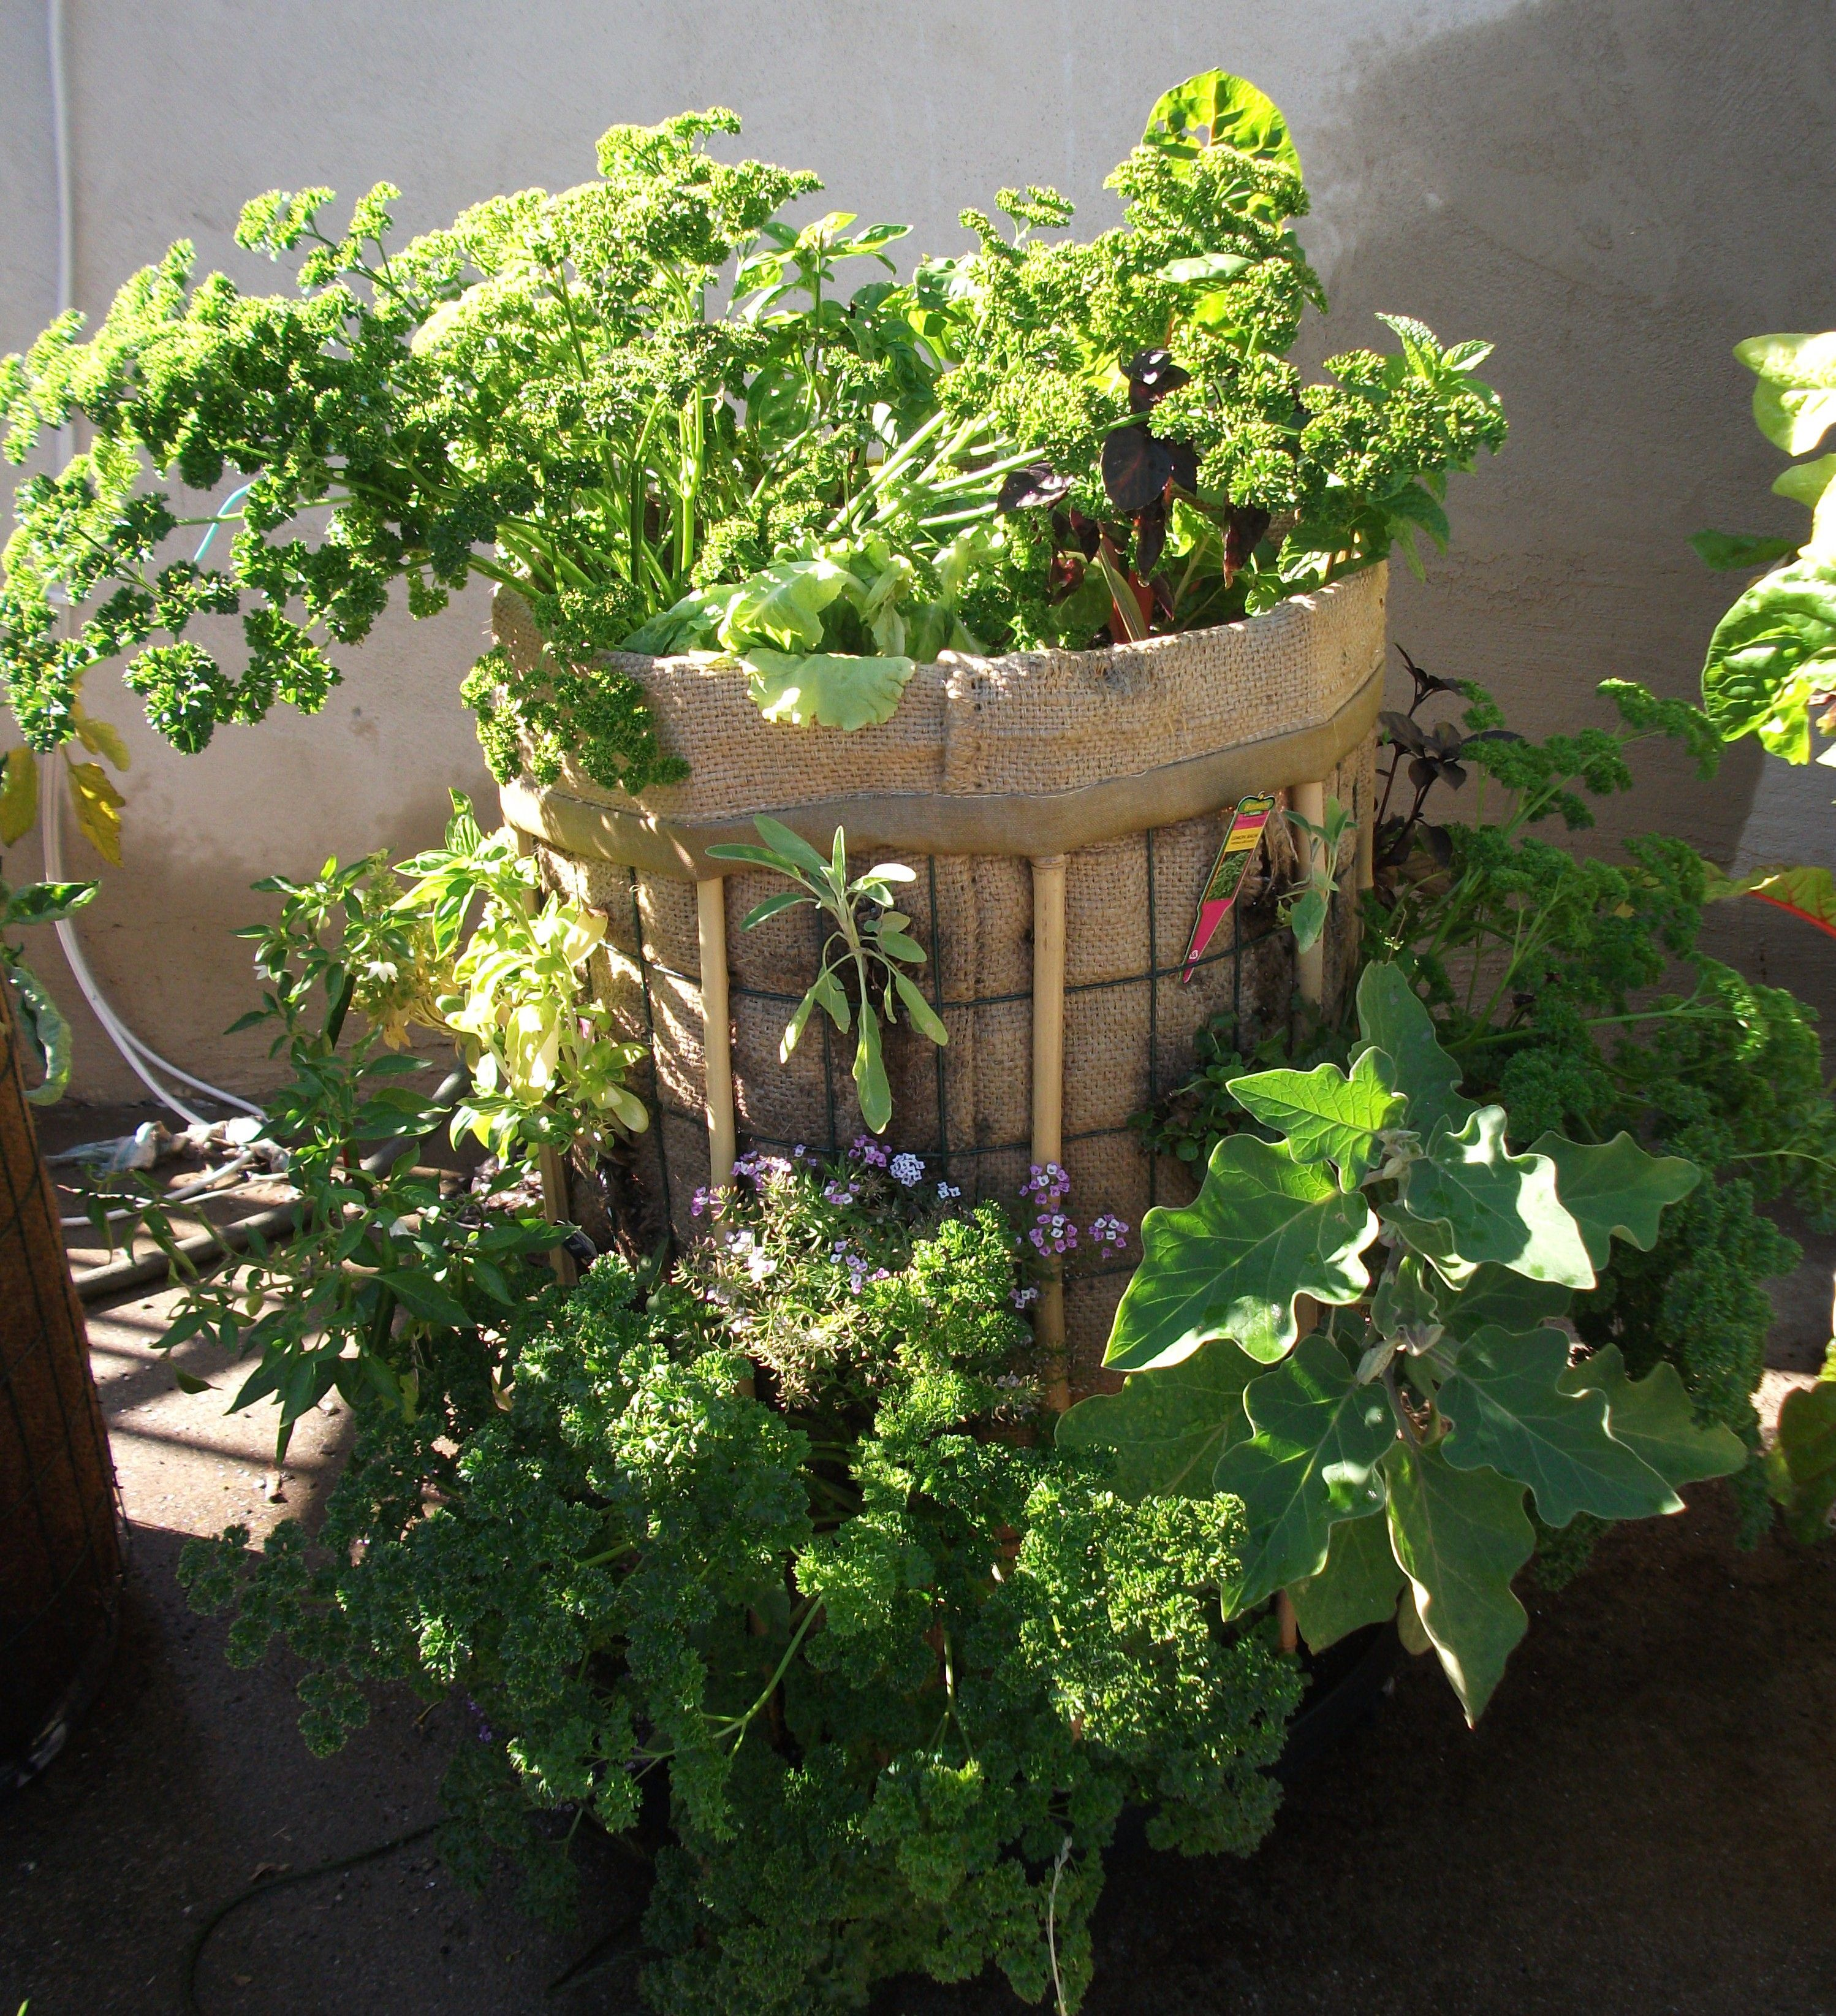 20 sq feet of gardening!!! WOW!! Grow your own food even in a tiny apartment! Srsly Easy!